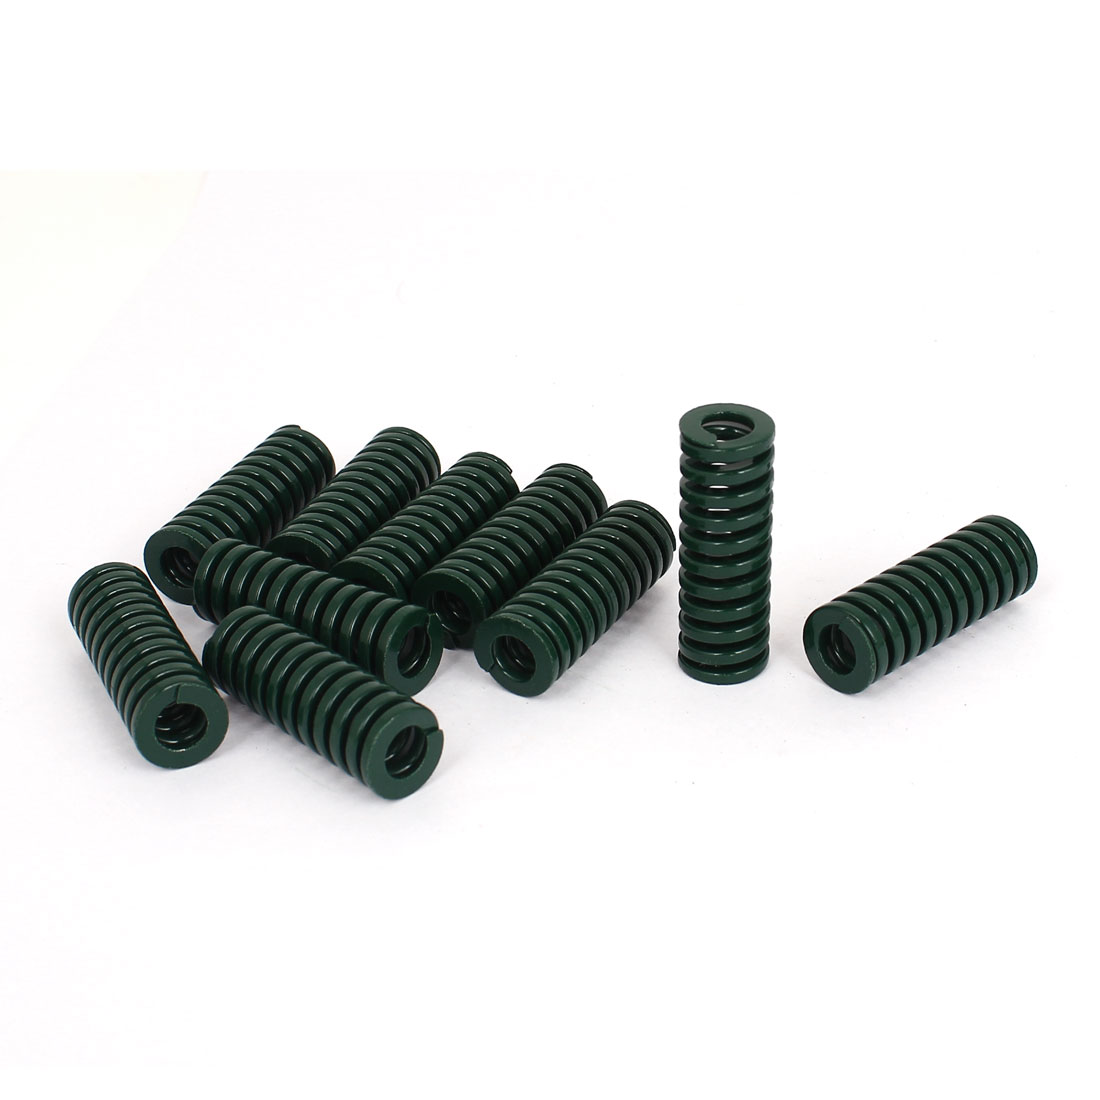 14mm OD 40mm Long Heavy Load Stamping Compression Mold Die Spring Green 10pcs